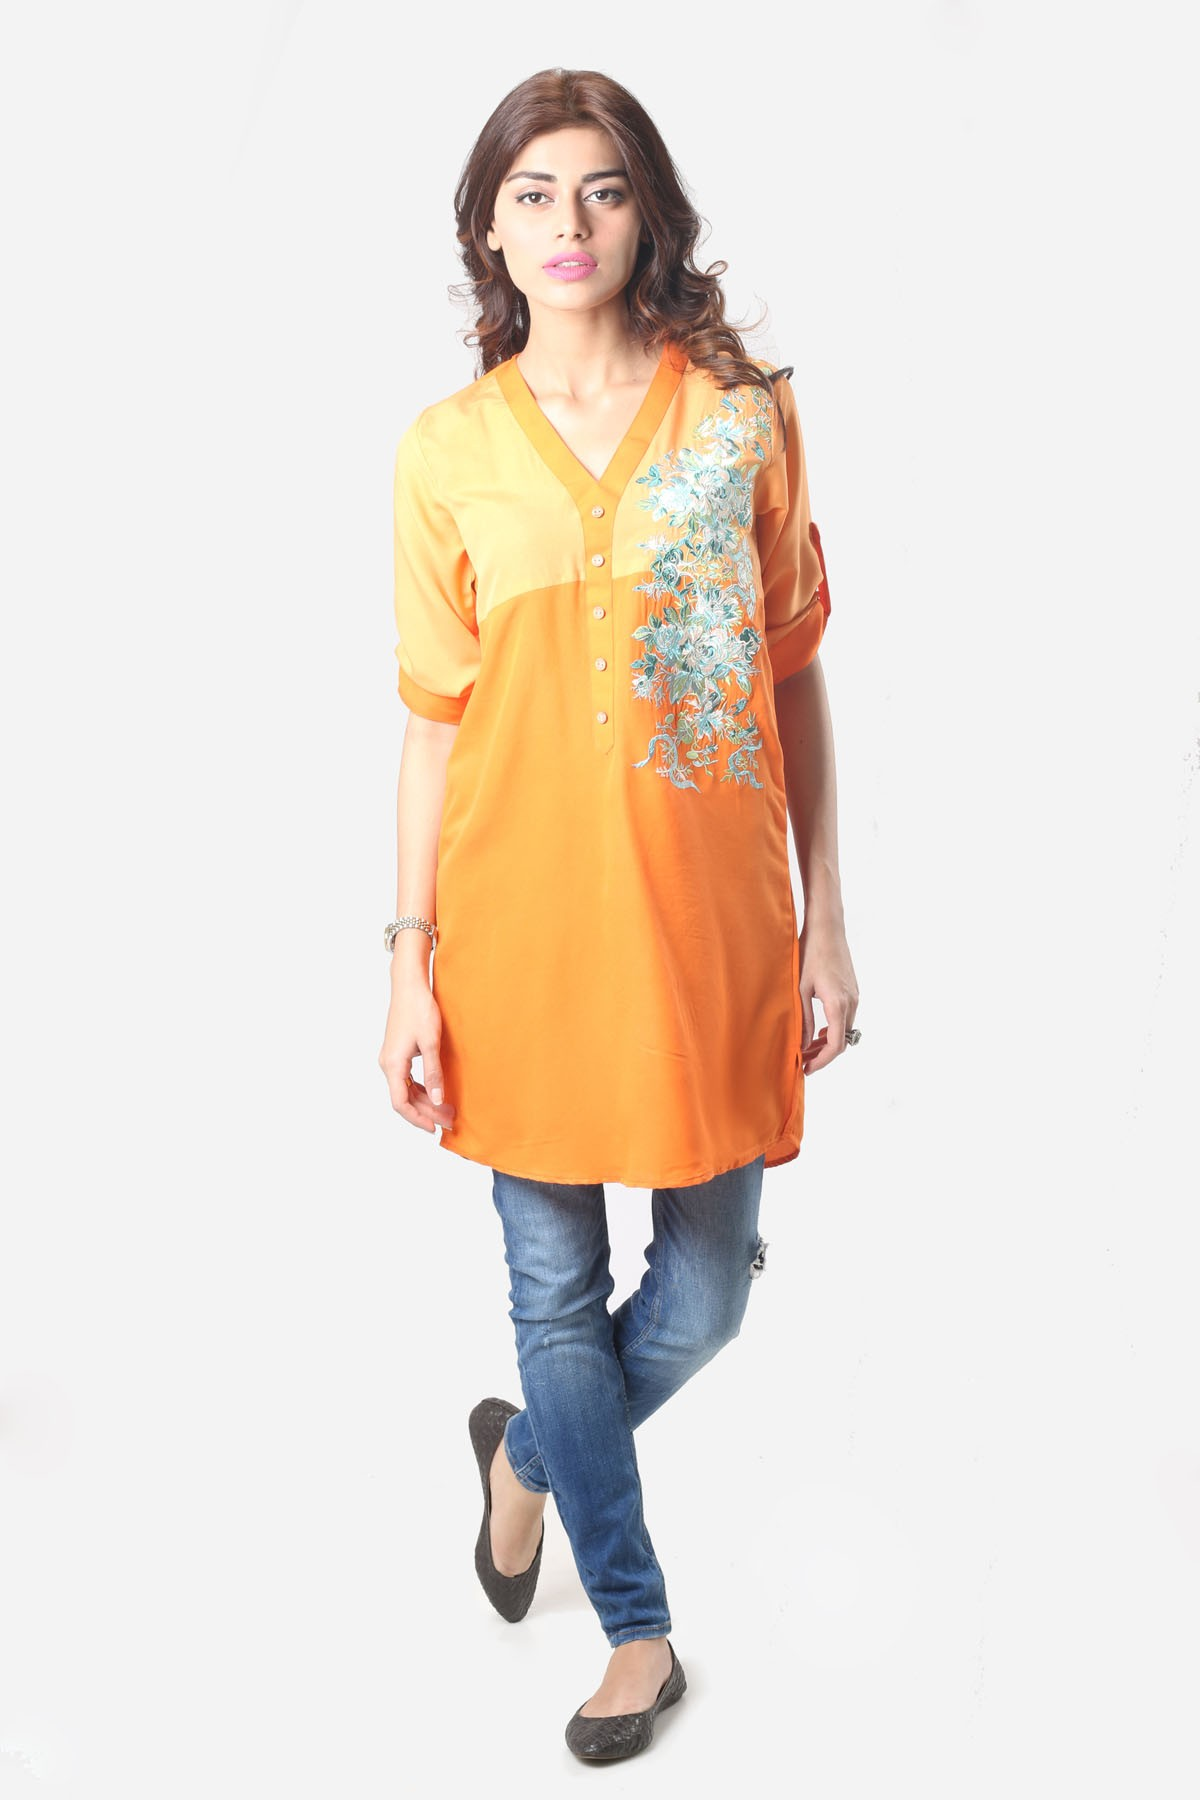 Stylish Tops Collection 2013 For Girls: Khaadi New Western Pret Stylish Tops And Shirts 2014 For Women